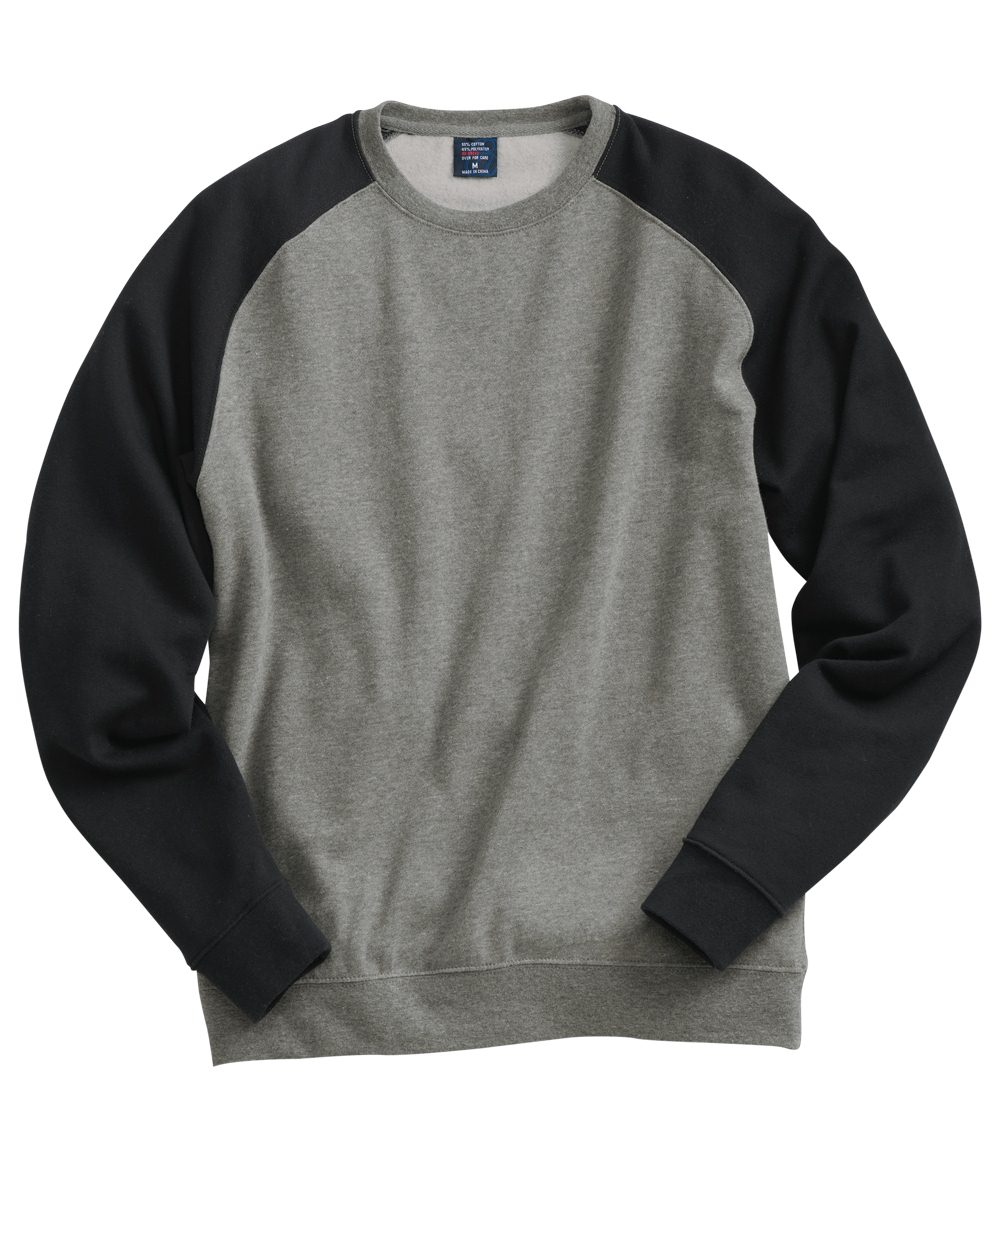 Independent Trading Co. Fitted Raglan Crewneck Sweatshirt ...